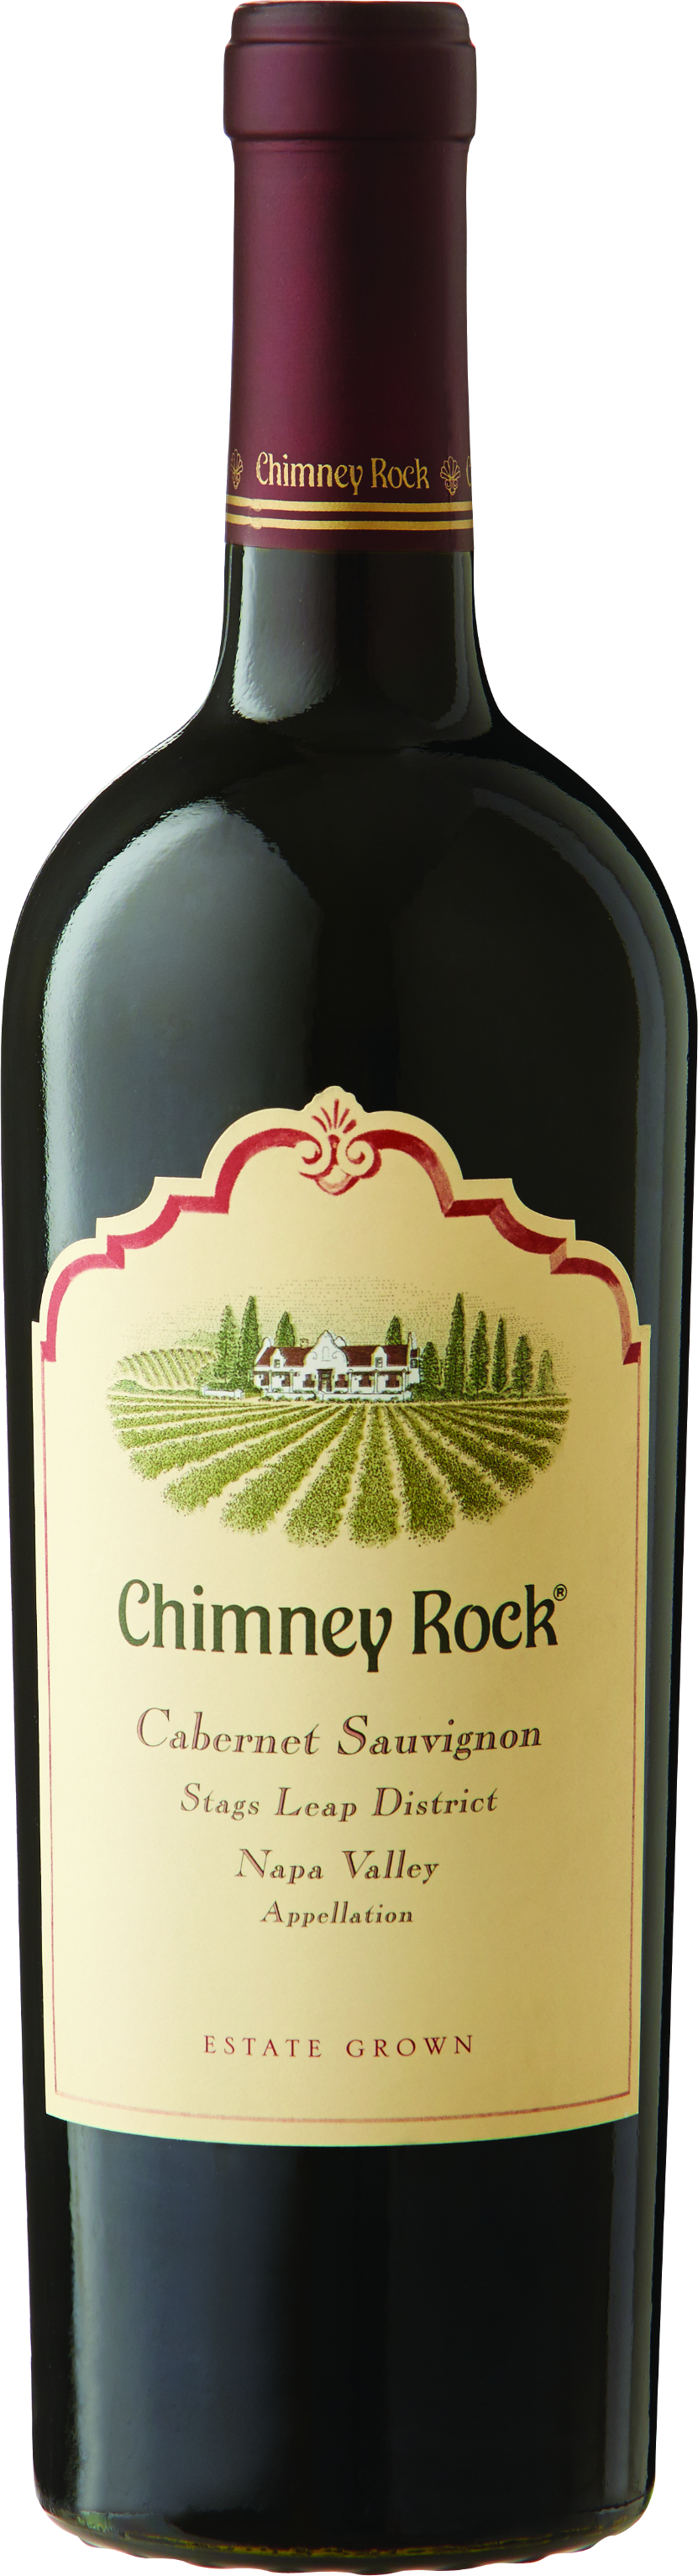 Chimney Rock Cabernet Sauvignon Stags Leap District 2016 Product Image